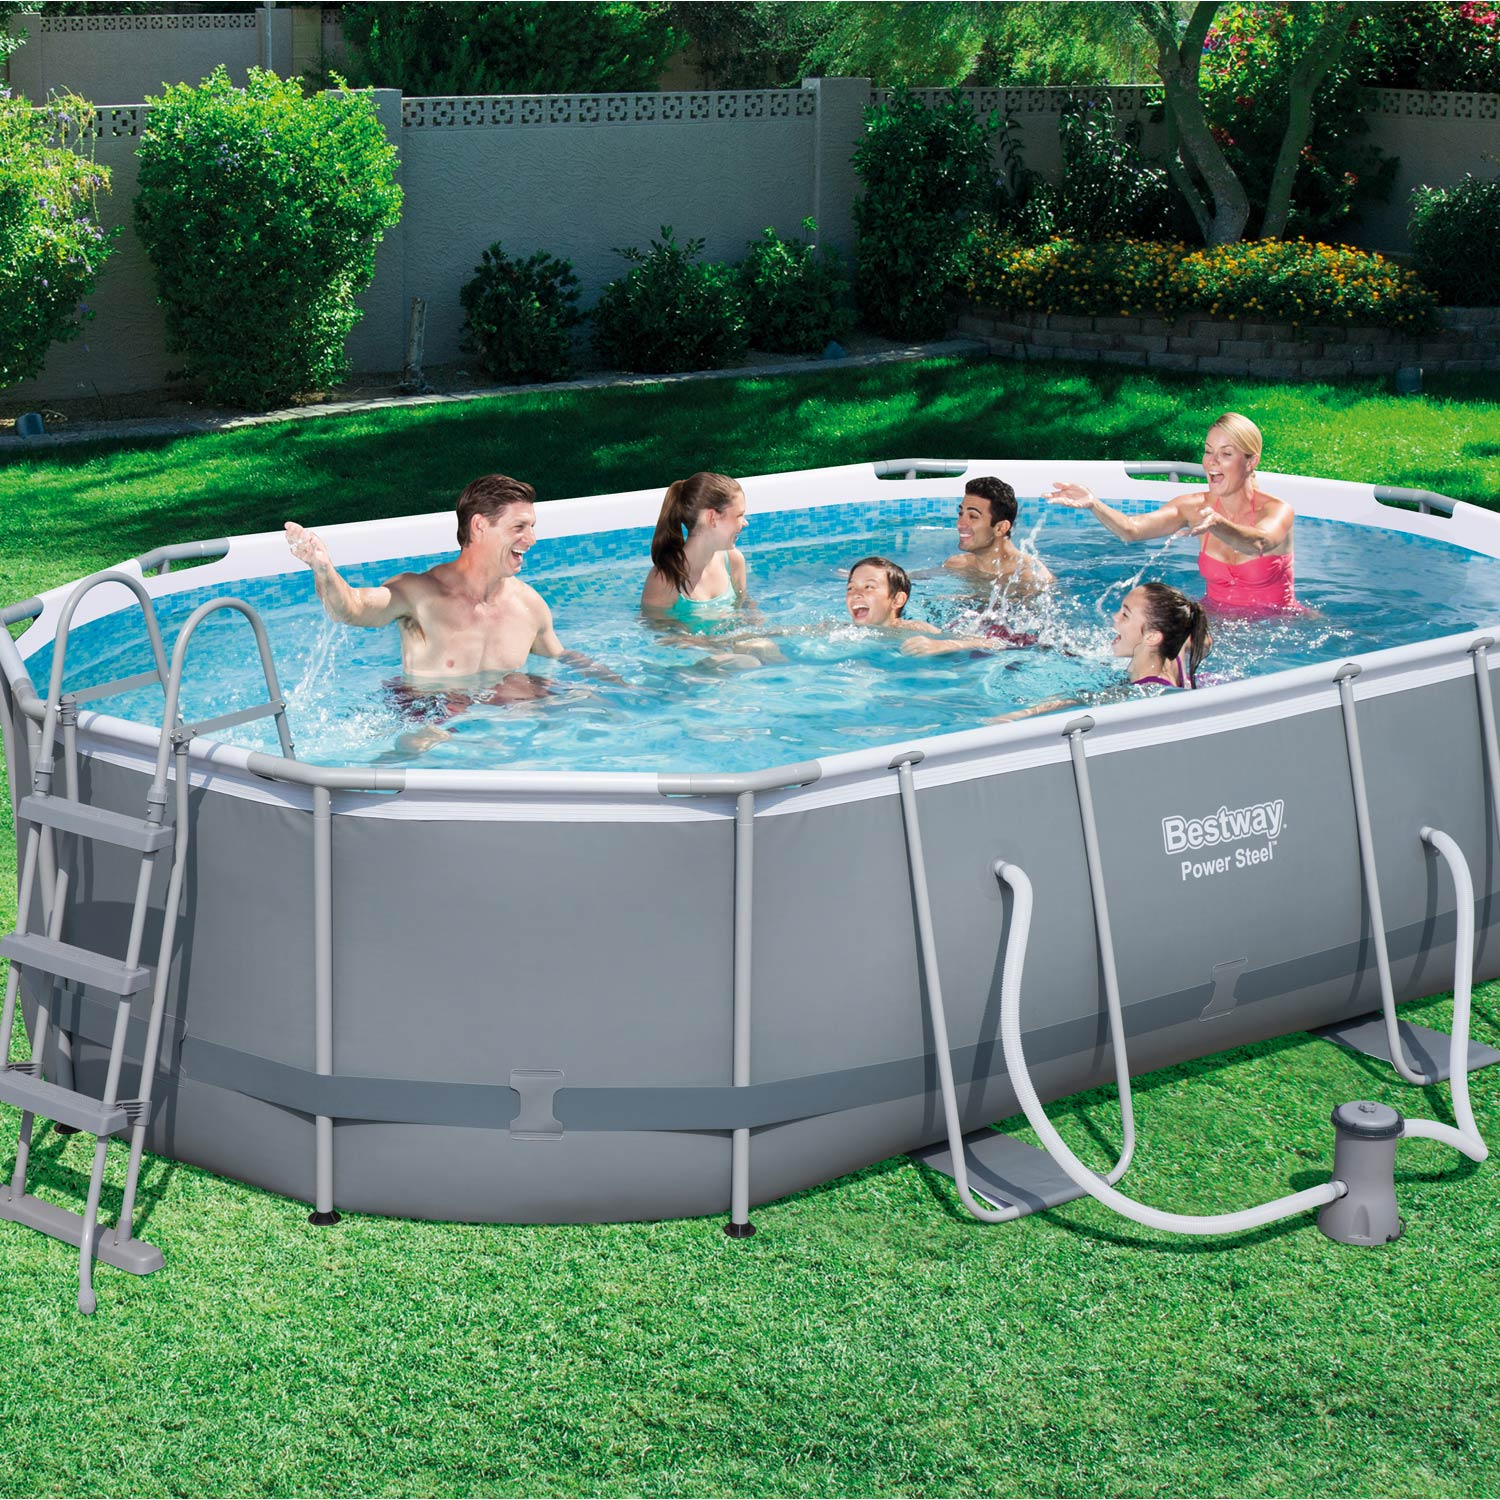 Piscine hors sol autoportante tubulaire bestway l x for Piscine hors sol declaration